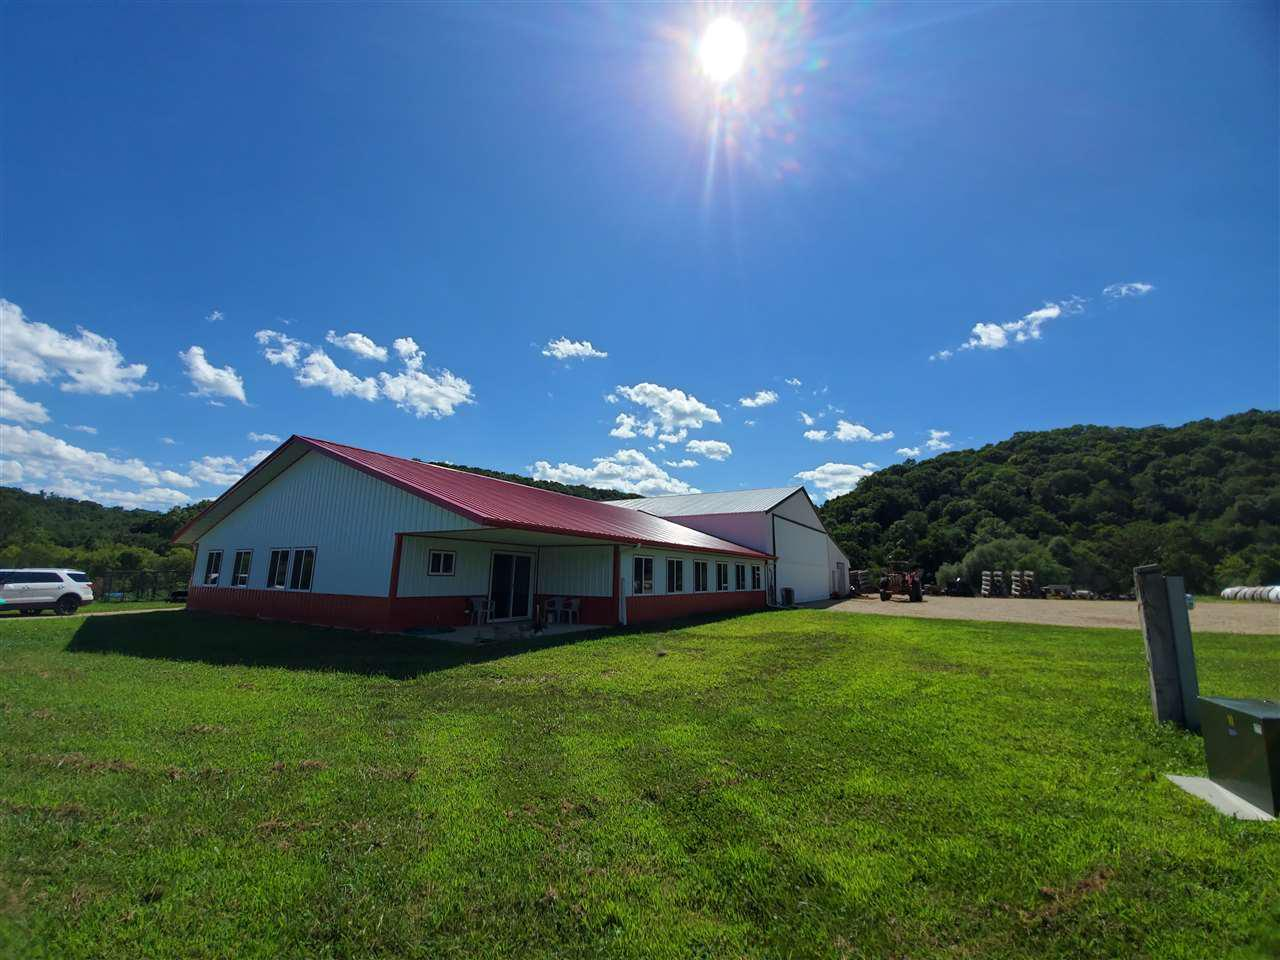 Located in a beautiful valley is this 46 acre property with wooded hillside views. Included is 6 acres of wooded area and 10 acres tillable land. Citron Creek provides over half a mile of frontage on a DNR rated trout stream. New constructed house in 2019 on a cement slab connected to a 50x90ft shed. You will love this 4 bedroom and 2 bath farm style house with steel roof siding. House features include: in-floor heat and central air, cherry custom cabinets & mosaic tile in kitchen, 6x8ft walk in pantry, cathedral ceilings, ash trim, ash hardwood flooring, and some tile flooring throughout. More features include: great room, 10x10 ft master bathroom with walk-in closet & lifetime windows waranty. Shop attached is insulated with plenty of storage & a 16x42ft bi fold airplane hanging door.